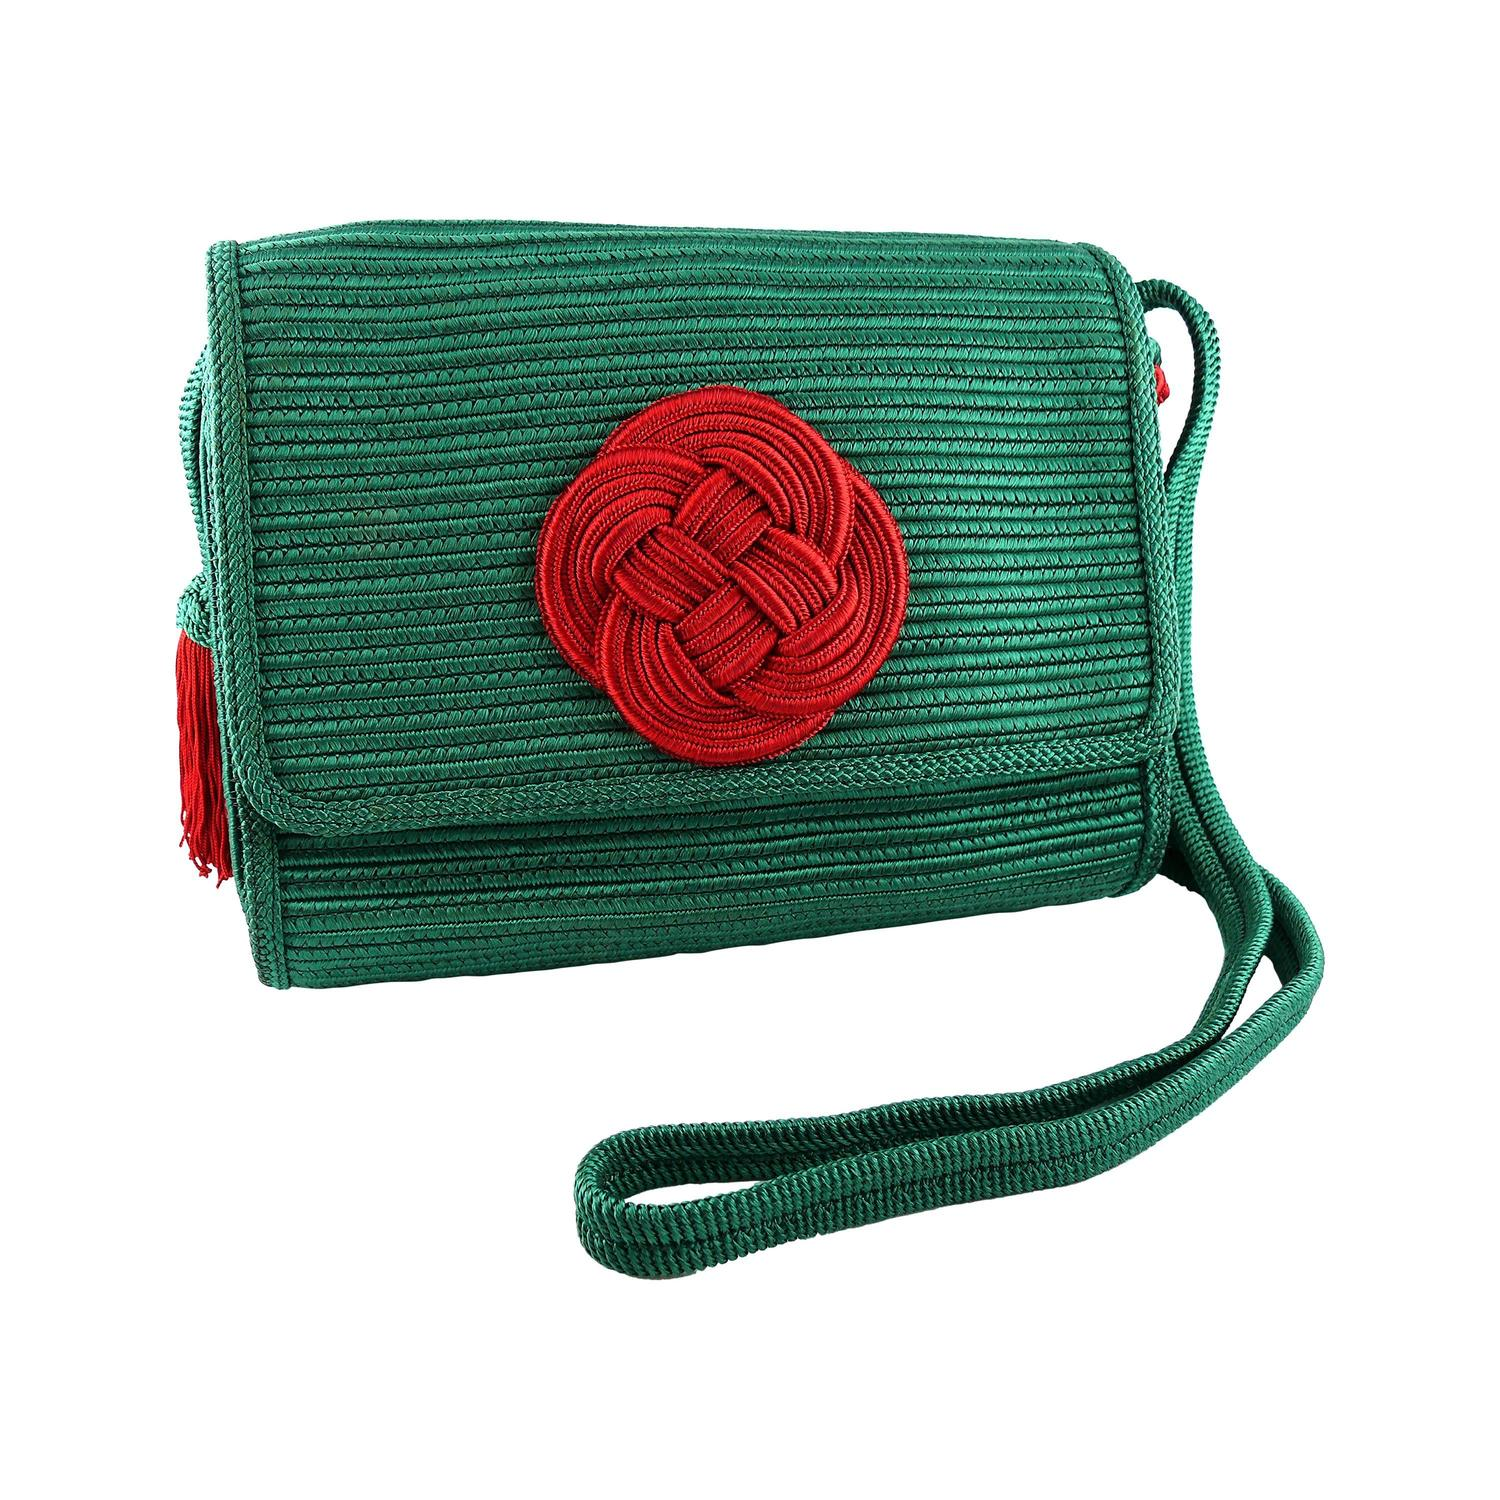 yves saint lauren wallet - Yves Saint Laurent YSL Vintage Chinoiserie Tassel Purse at 1stdibs